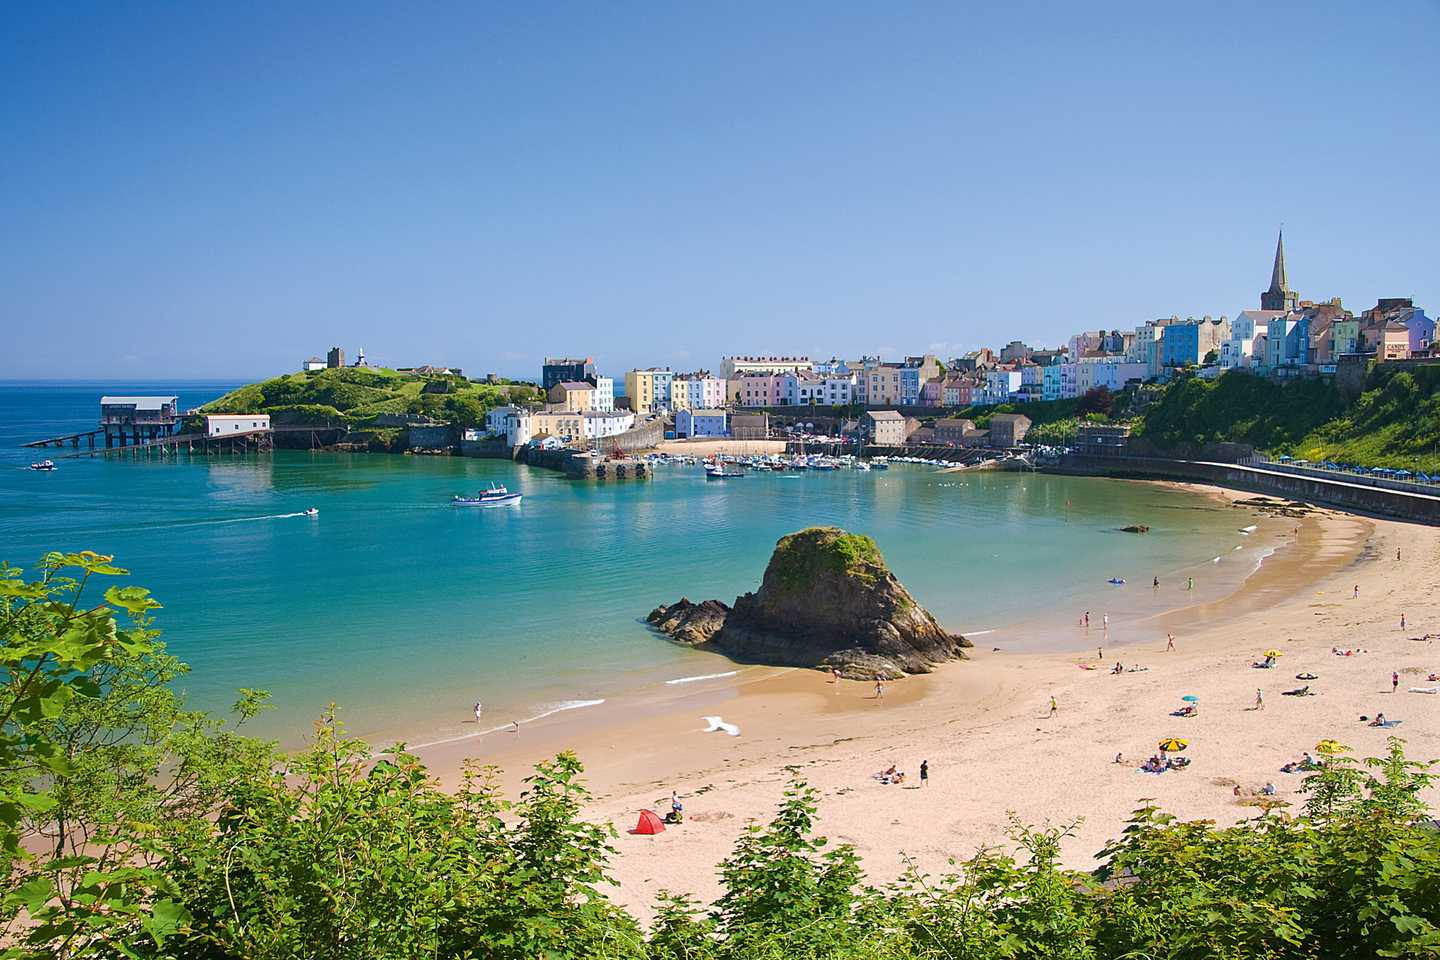 Tenby Harbour in South Wales